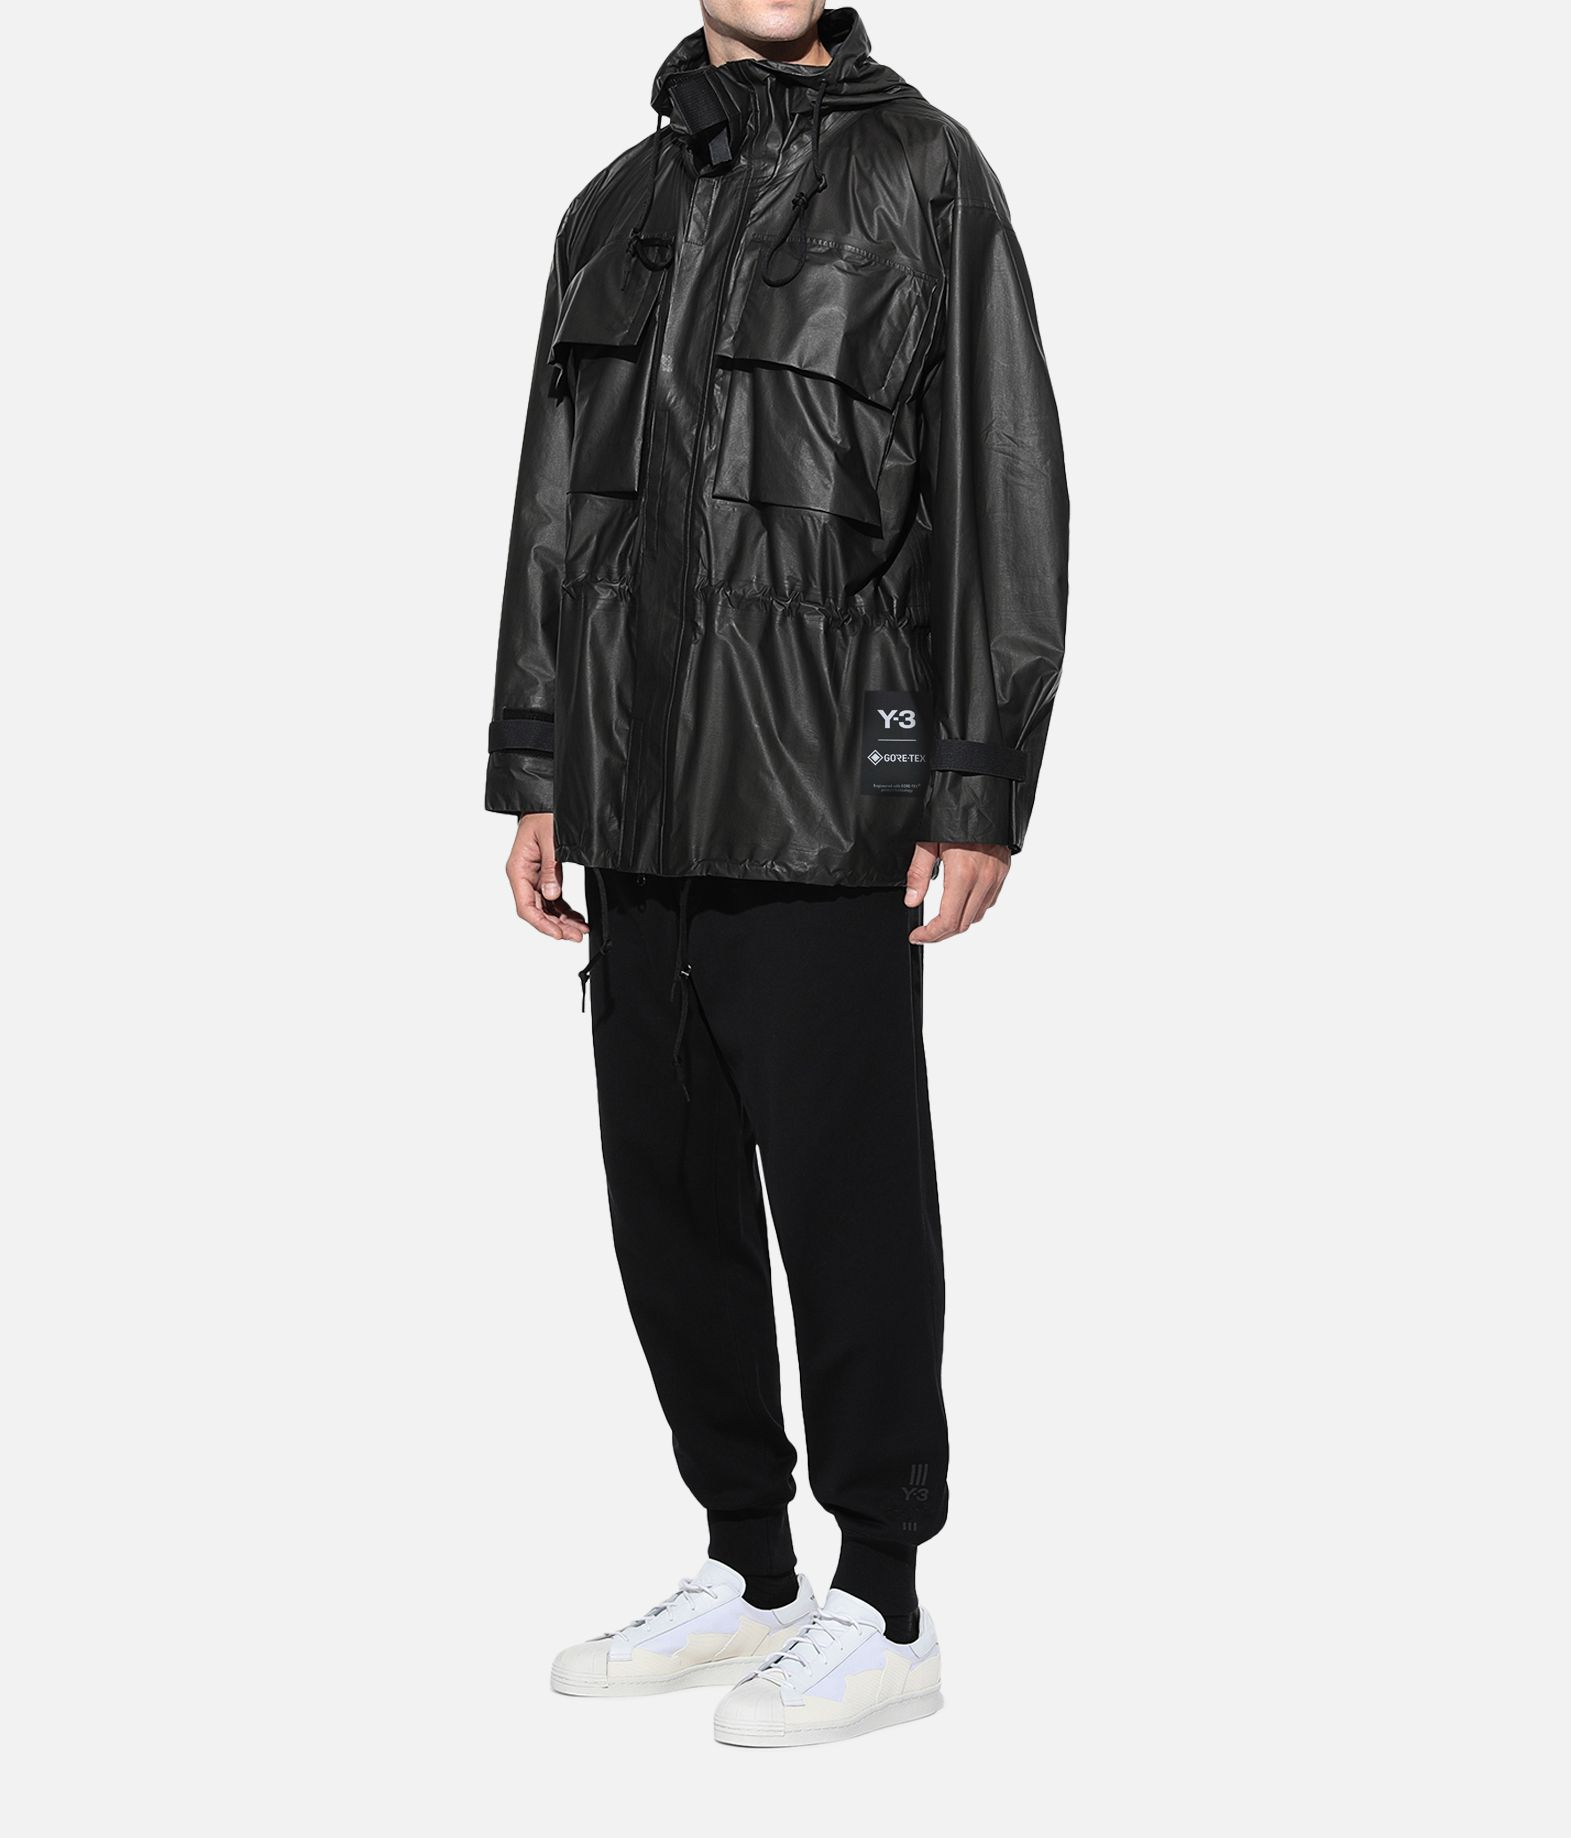 Y-3 Y-3 GORE-TEX Utility Hoodie Jacket  Raincoat Man a